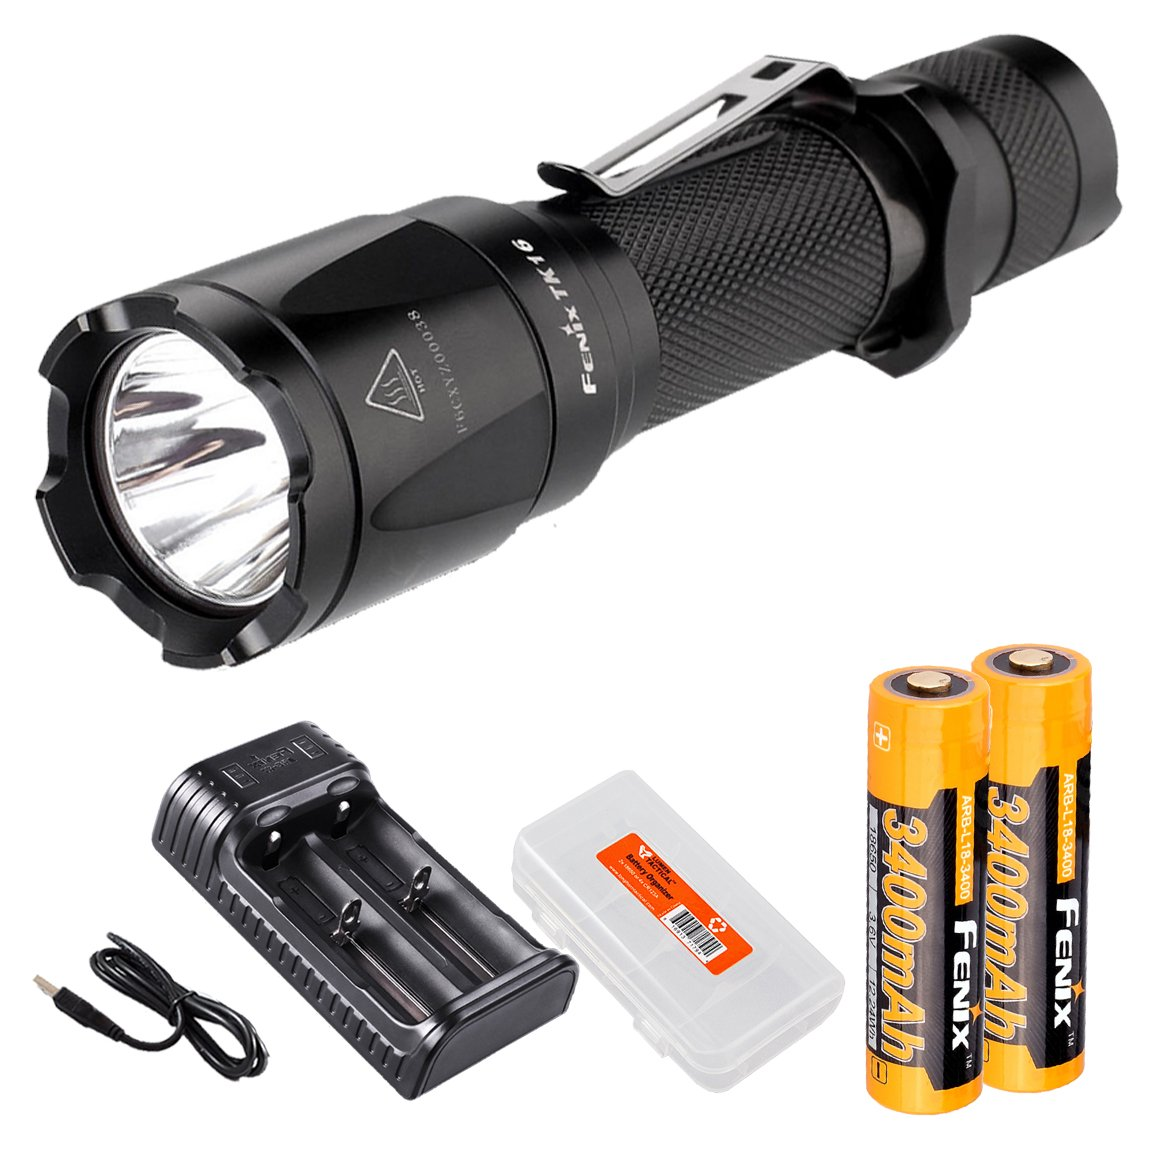 Bundle- 6 items: Fenix TK16 1000 Lumen Tactical LED Flashlight /w Instant Strobe, 2 x Fenix 3400mAH 18650 Rechargeable Batteries, 2 Channel Smart Charger, and LumenTac Battery Organizer by Fenix